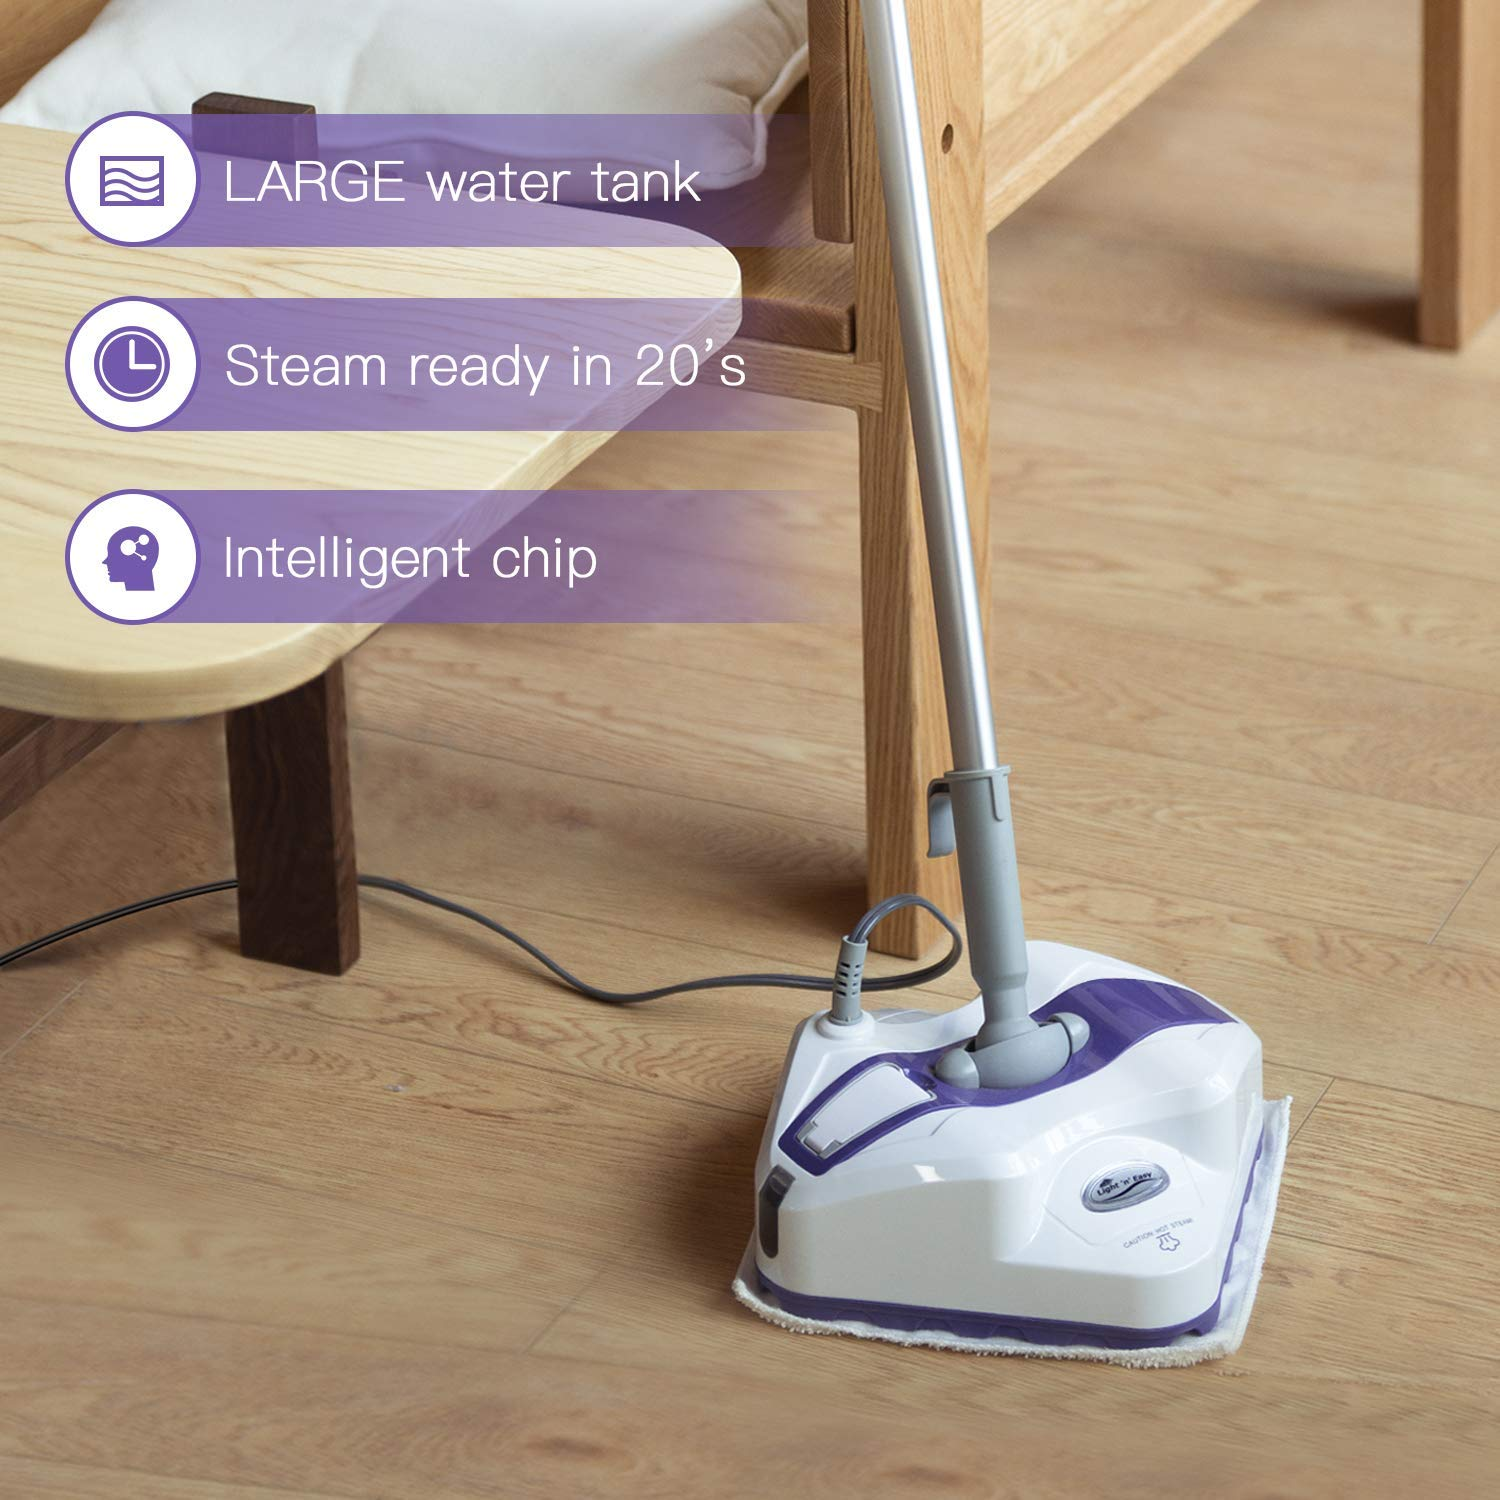 Light-N-Easy-Steam-Mop-for-Floor-Cleaning-With-Steam-Control